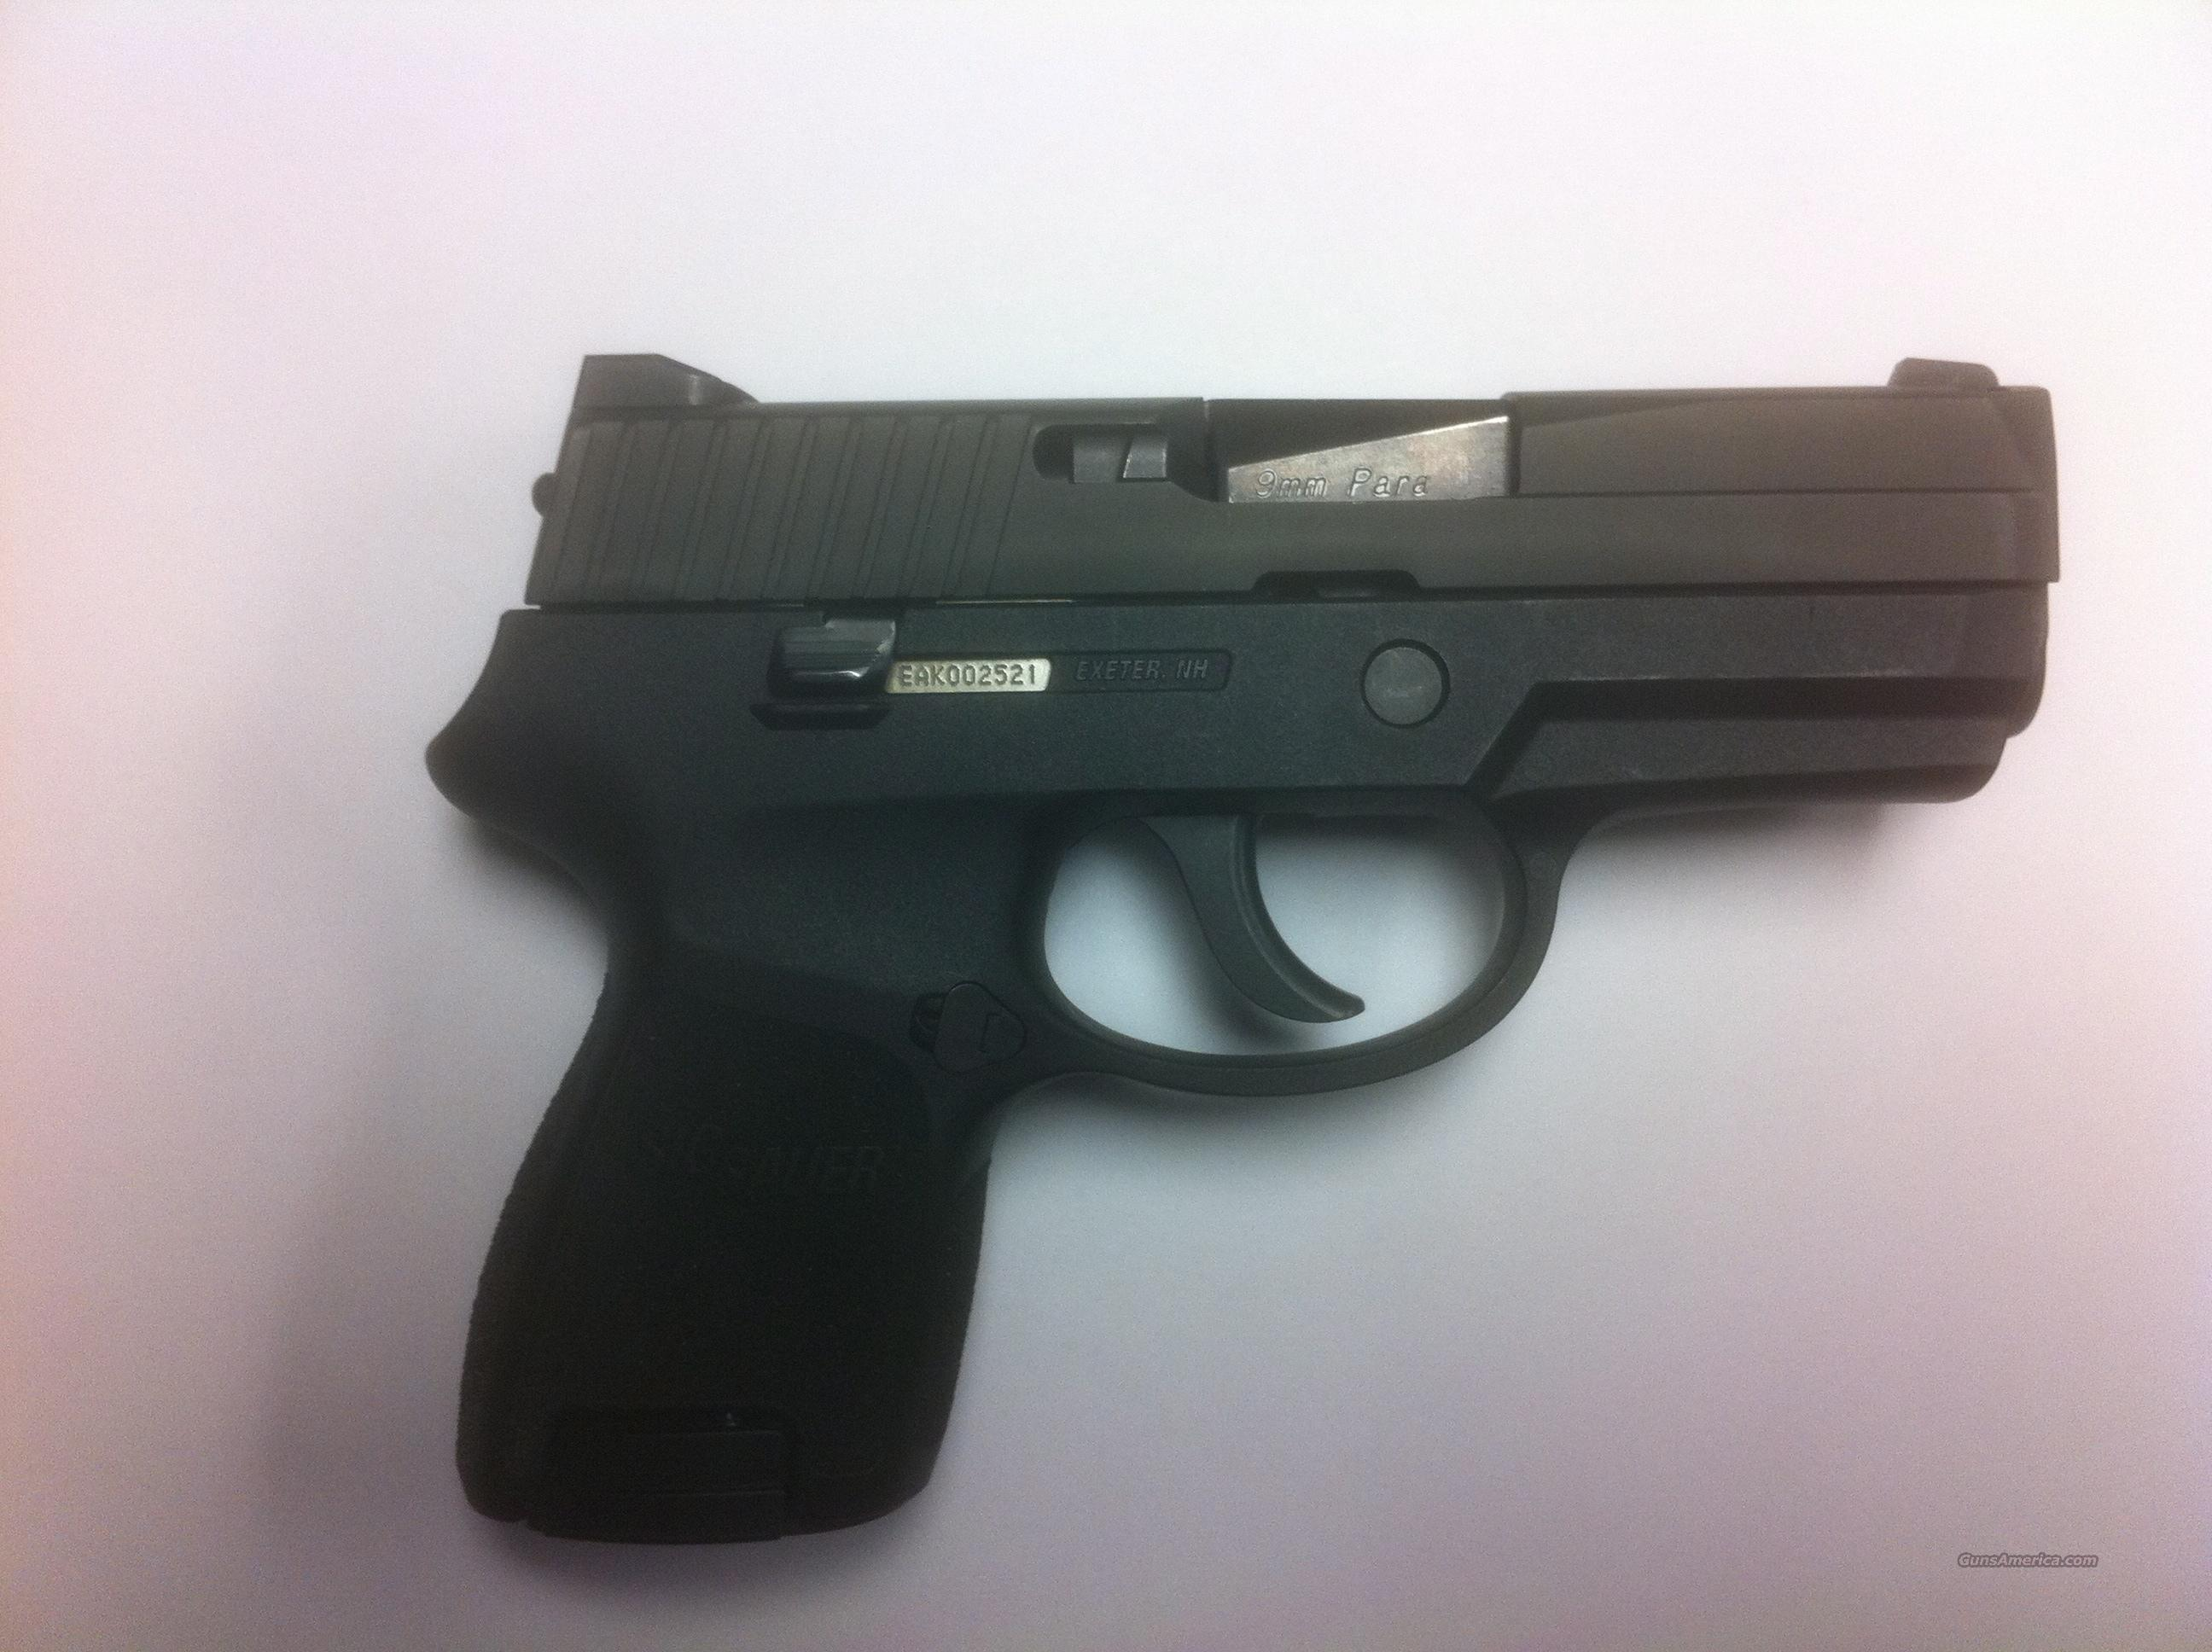 Previously loved Sig P250 compact 9mm  Guns > Pistols > Sig - Sauer/Sigarms Pistols > P250